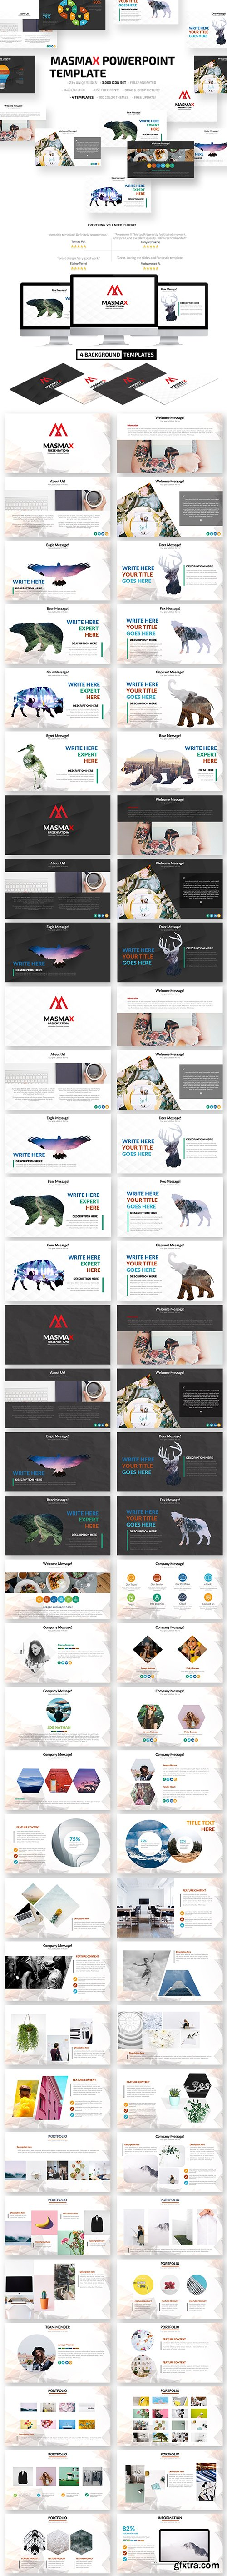 Graphicriver - Masmax Powerpoint Template 21605699